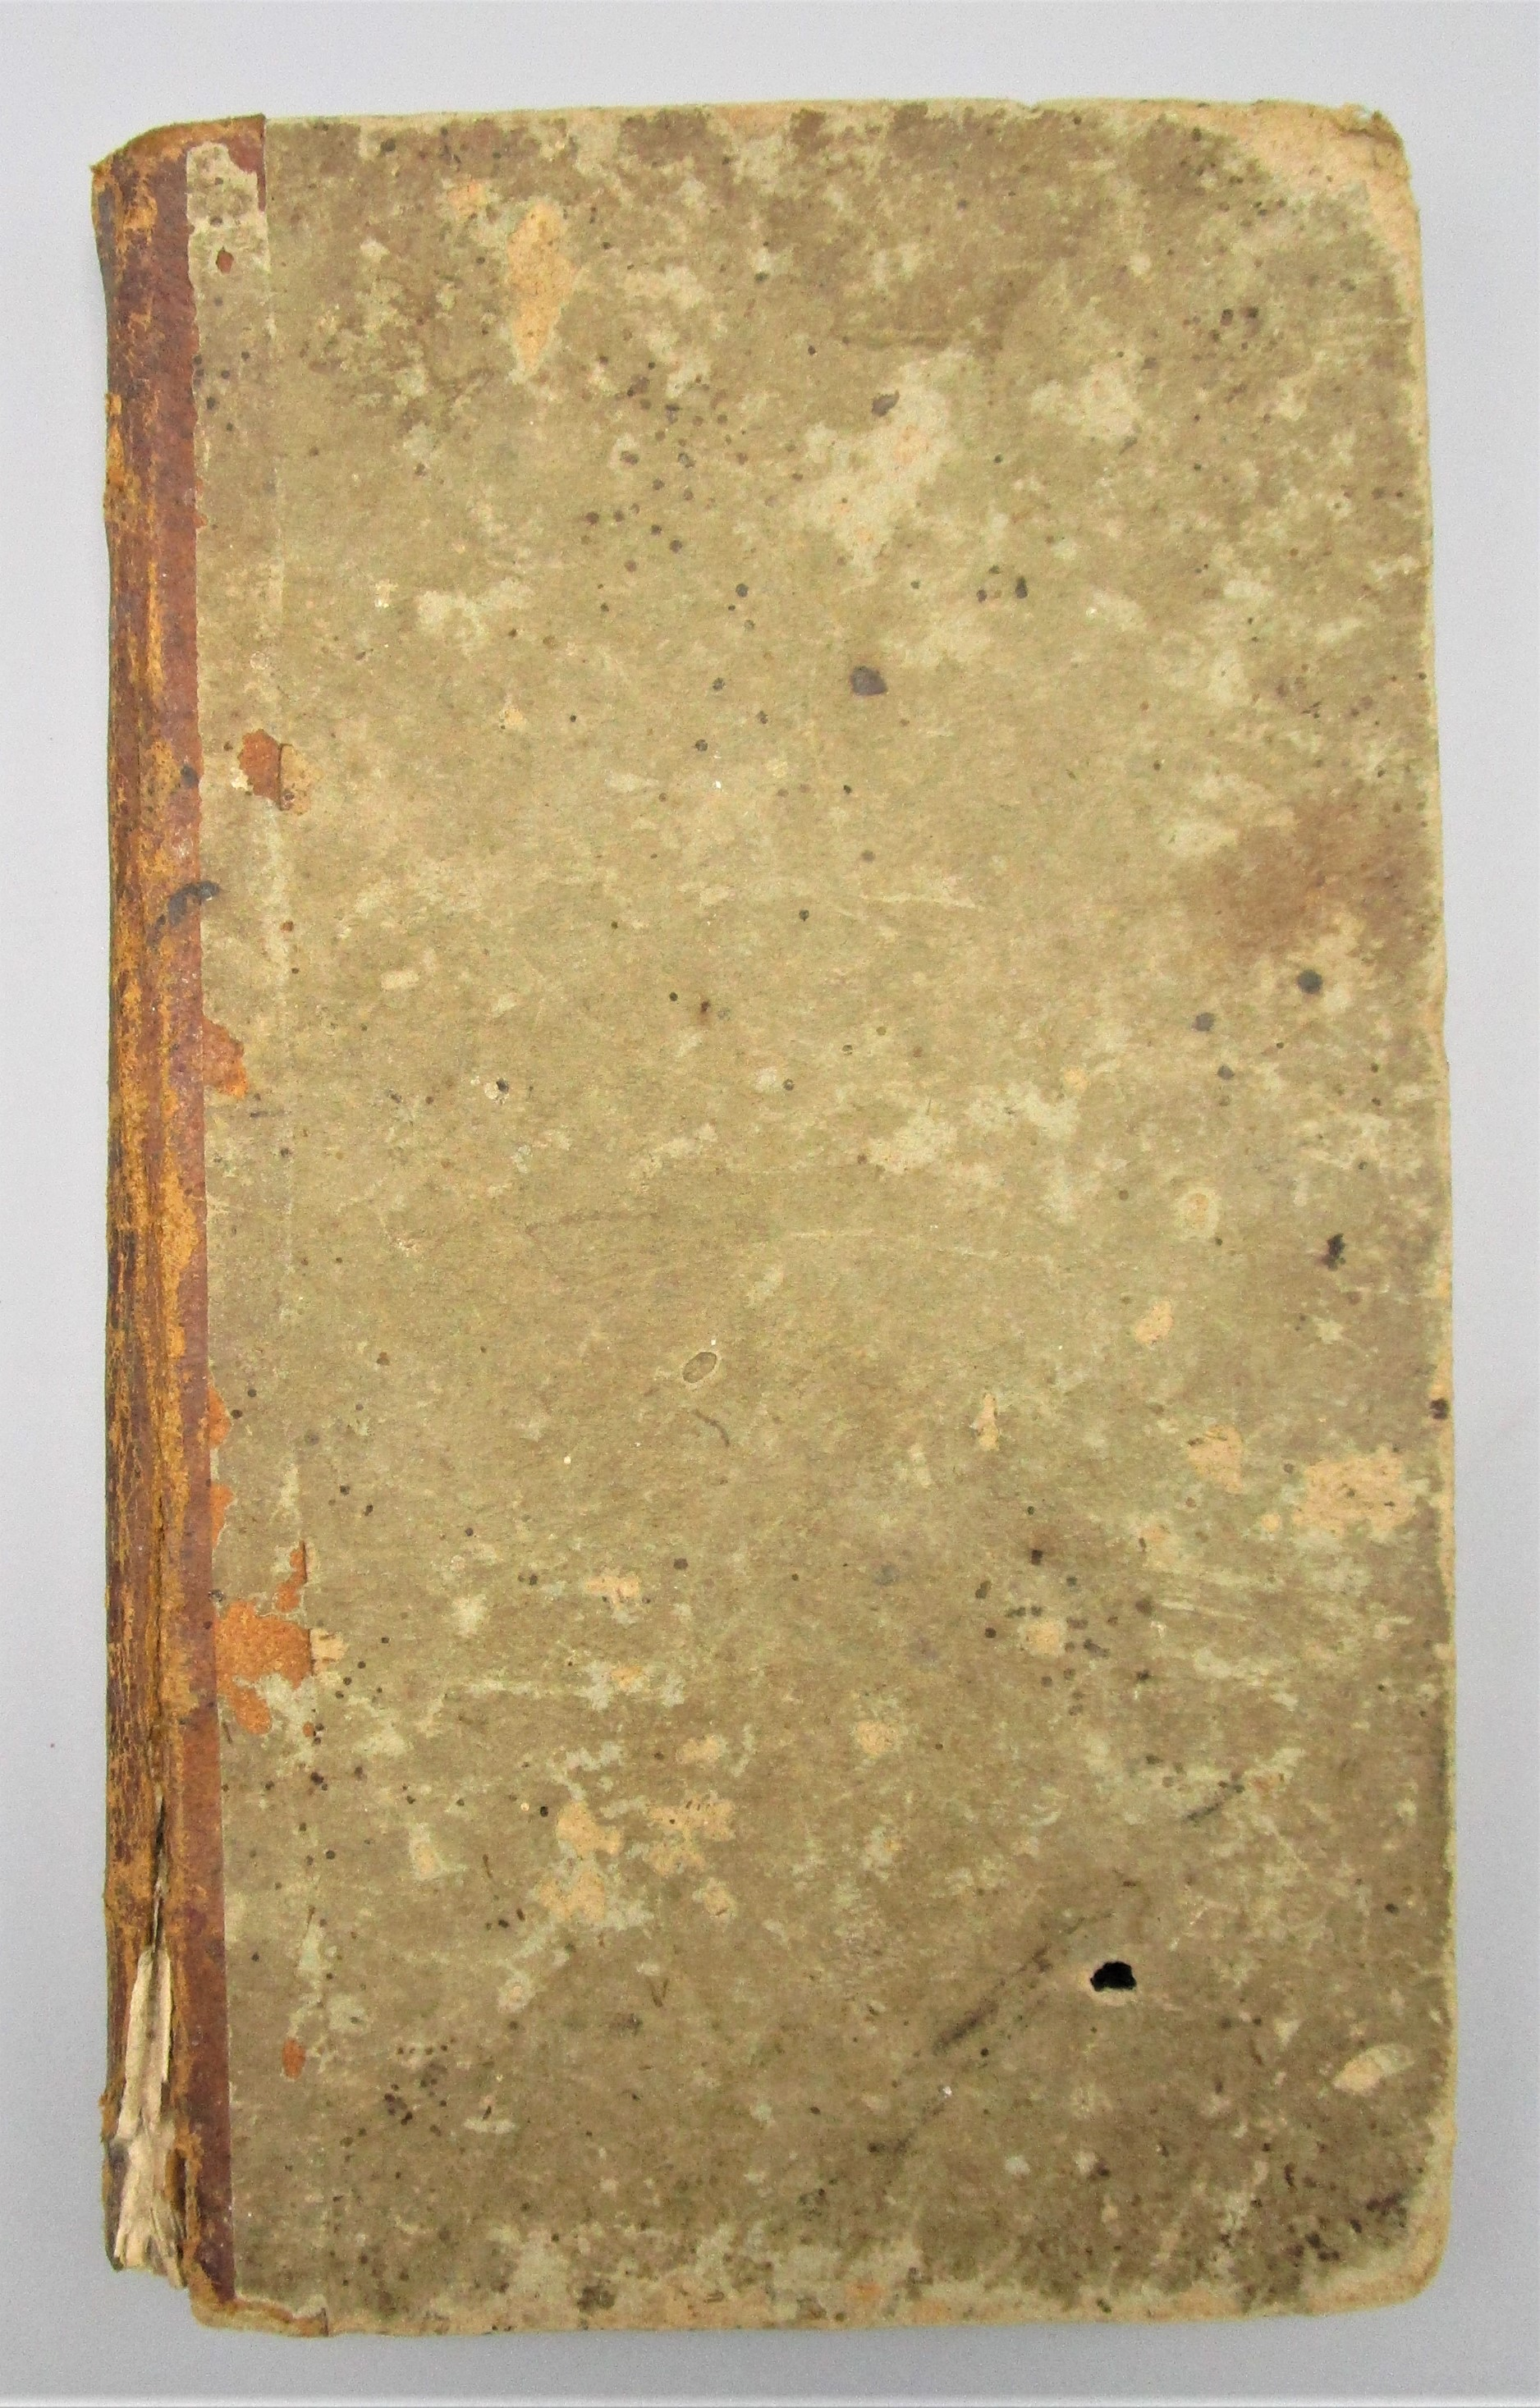 THE LAW INSTRUCTOR, OR FARMER'S & MECHANIC'S GUIDE, by Simon Siegfried  - 1824